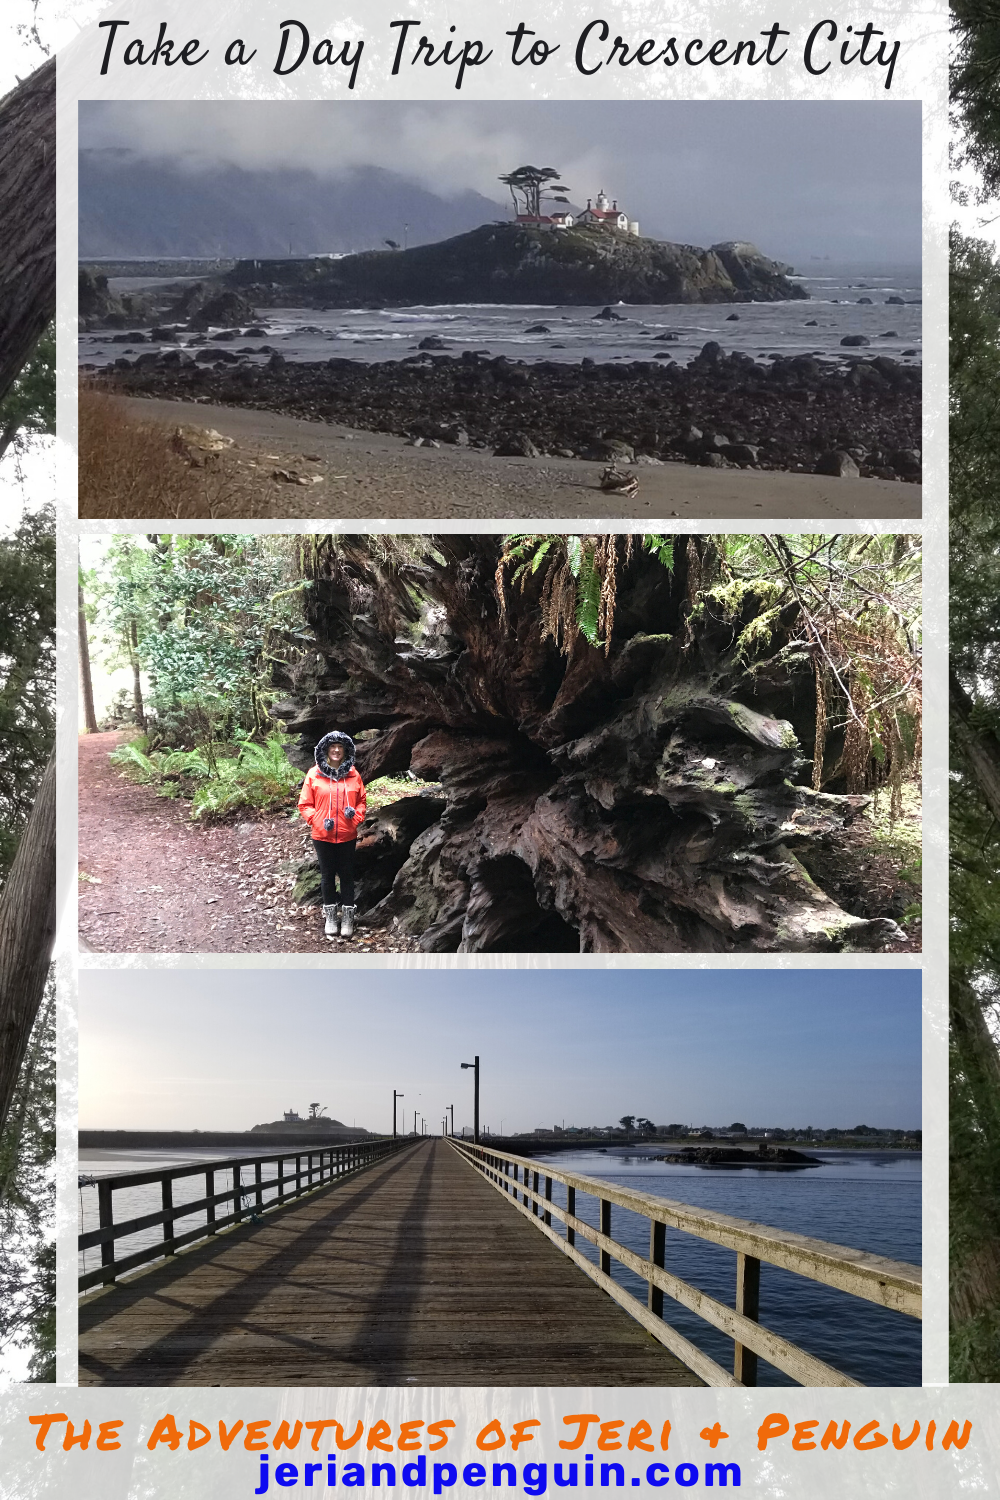 Day Trip To Crescent City In 2020 Crescent City Day Trips Visit California